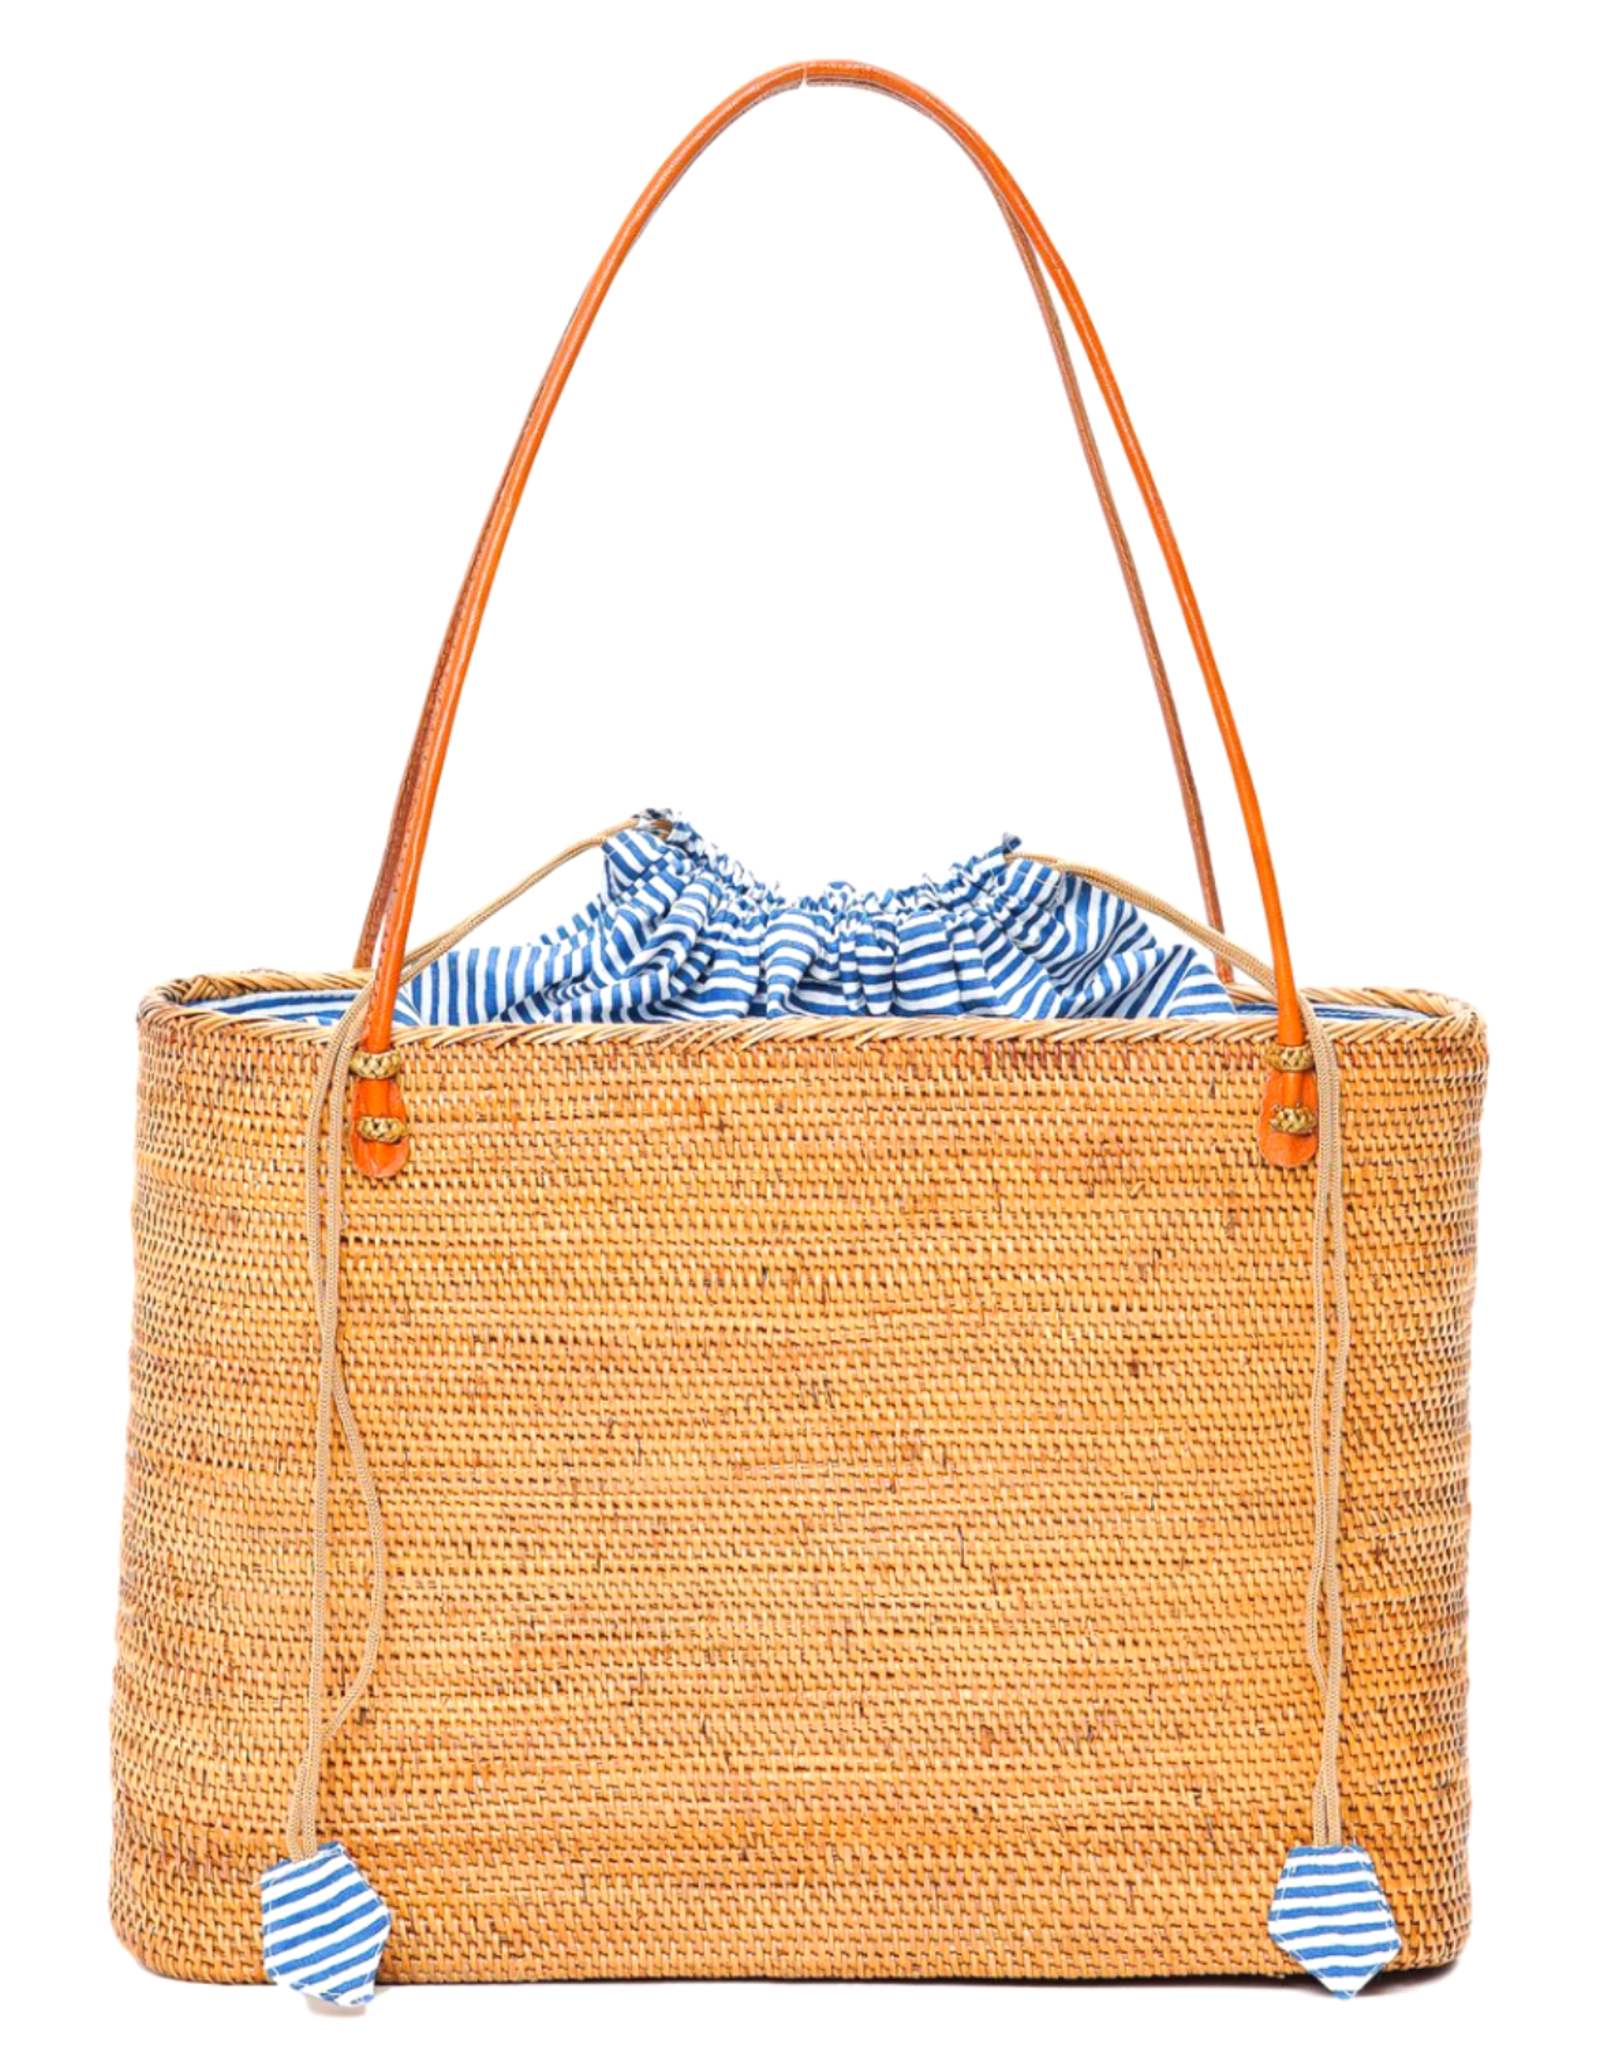 Poppy + Sage Harper Tote - Nantucket Navy Stripe